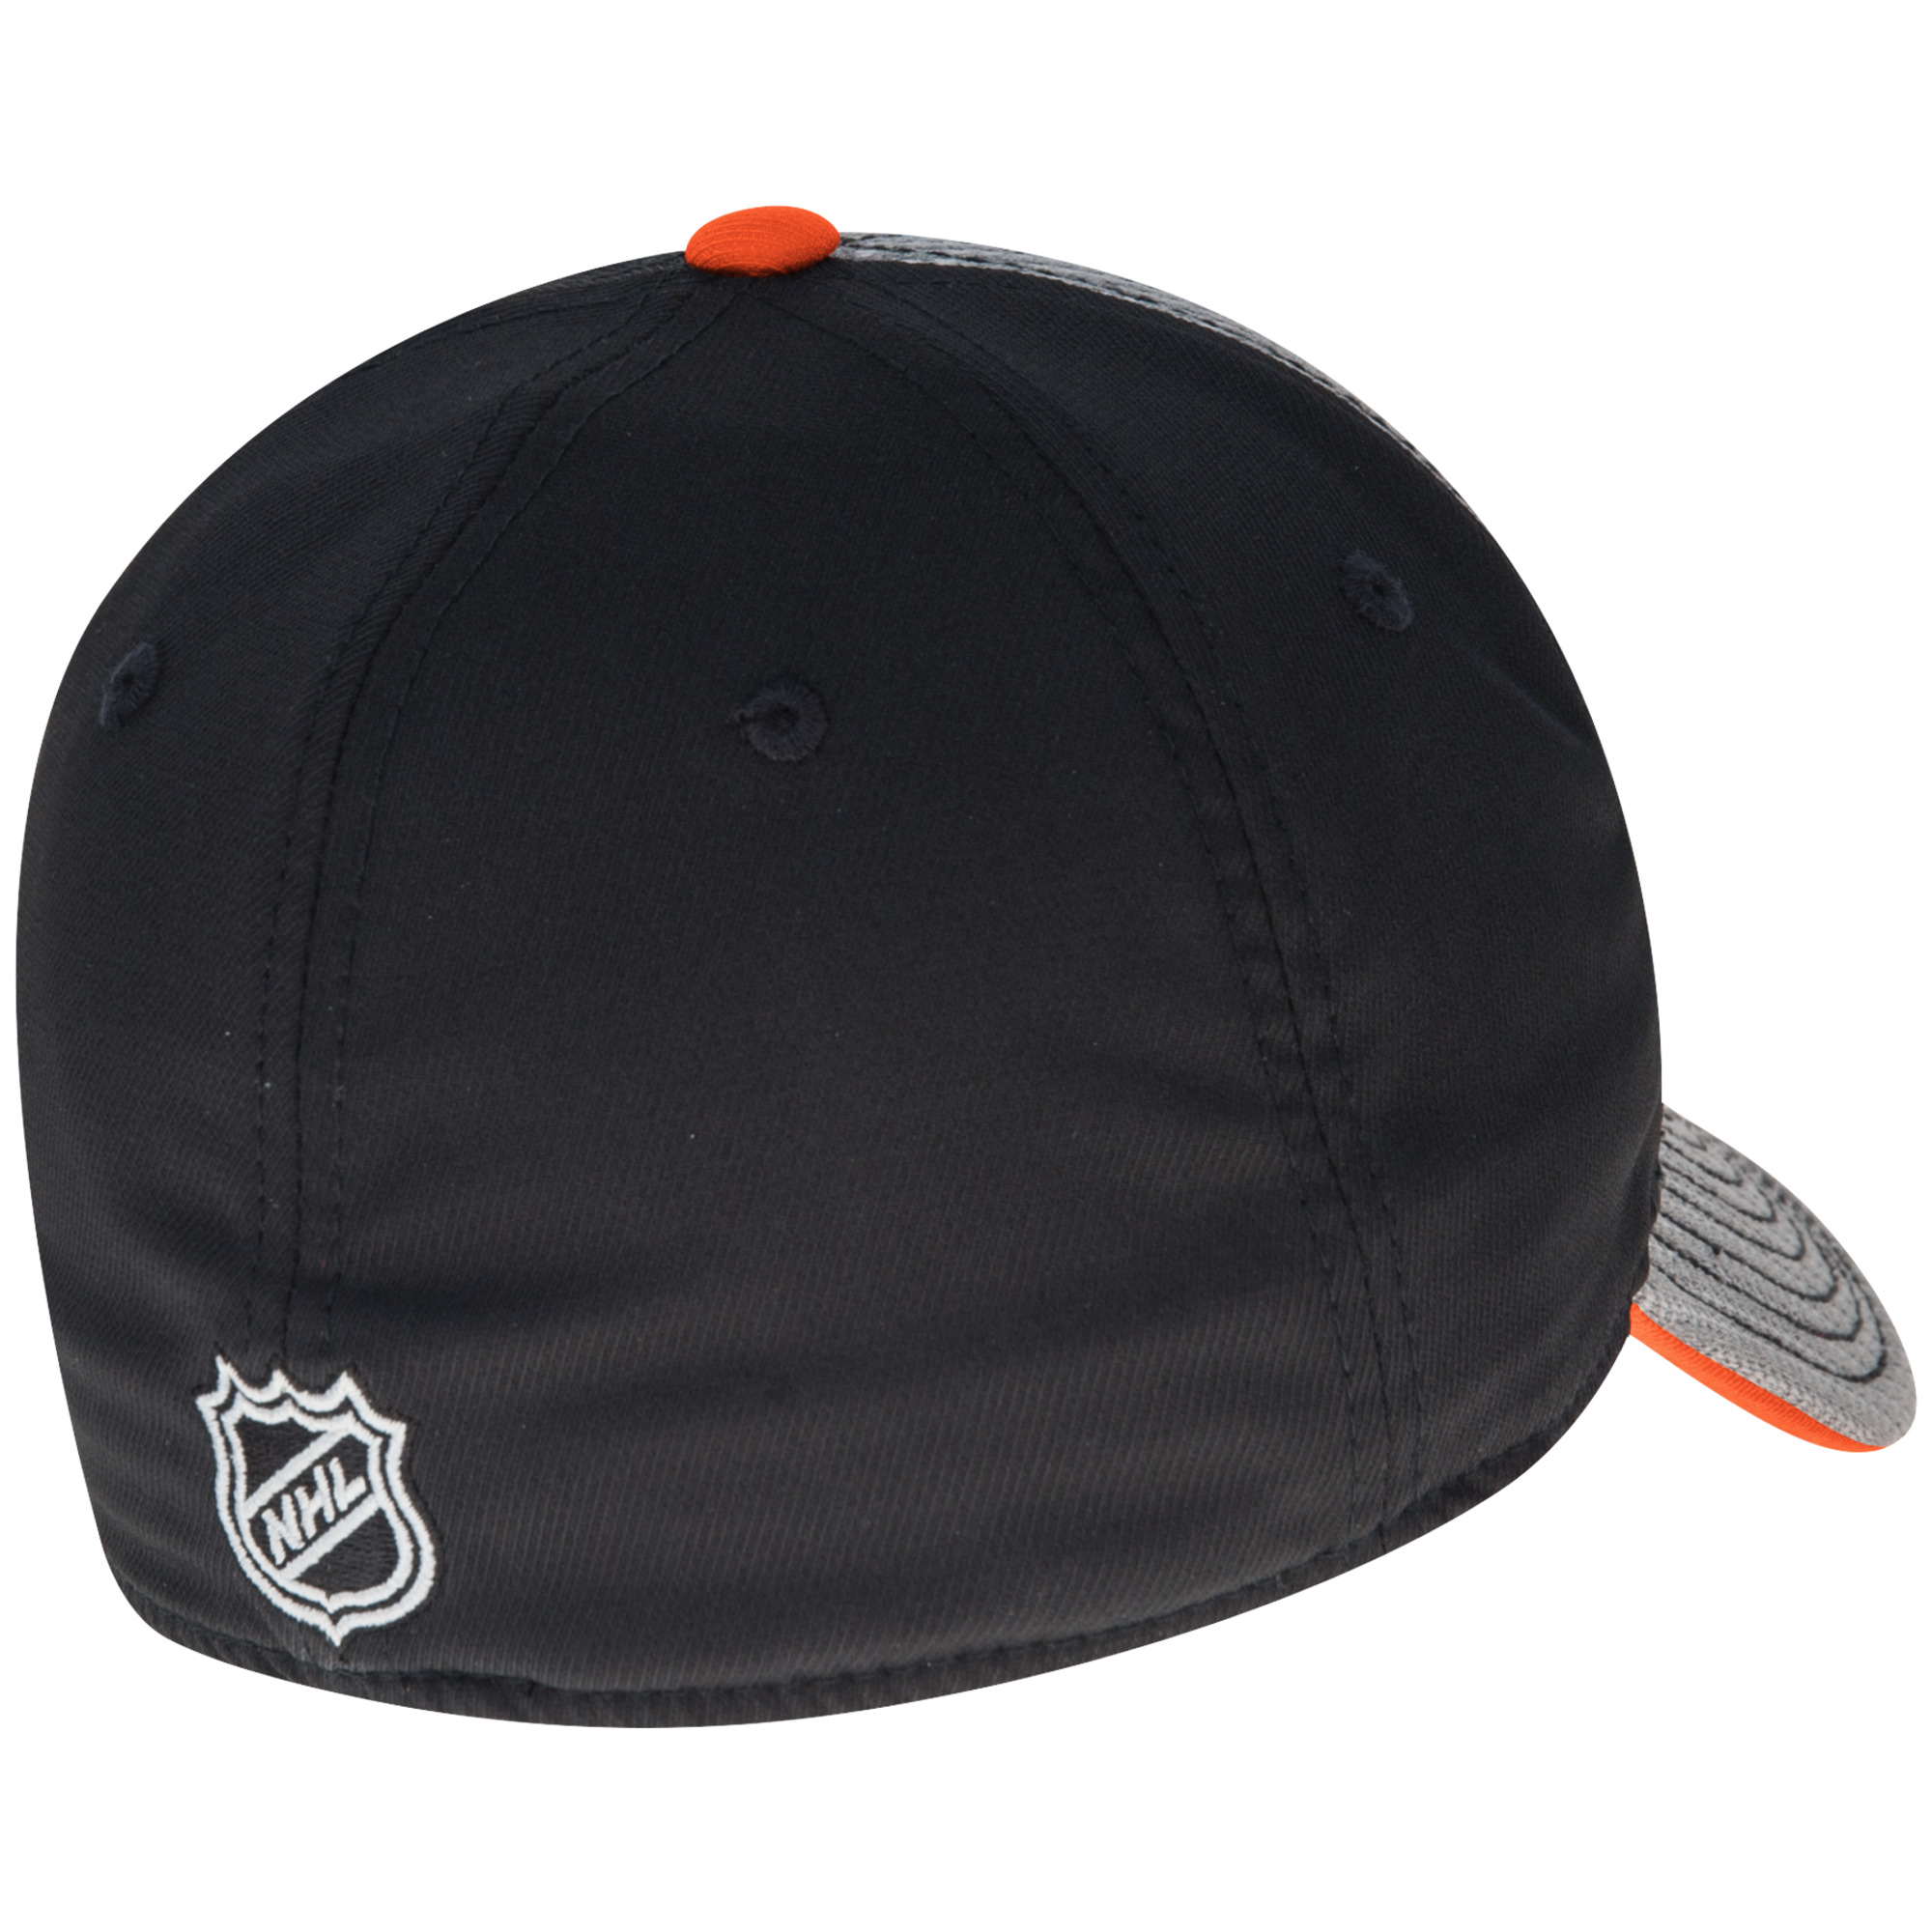 5271c575690 Philadelphia Flyers Men s Center Ice Fashion Structured Cap by Reebok -  Wells Fargo Center - Official Online Store